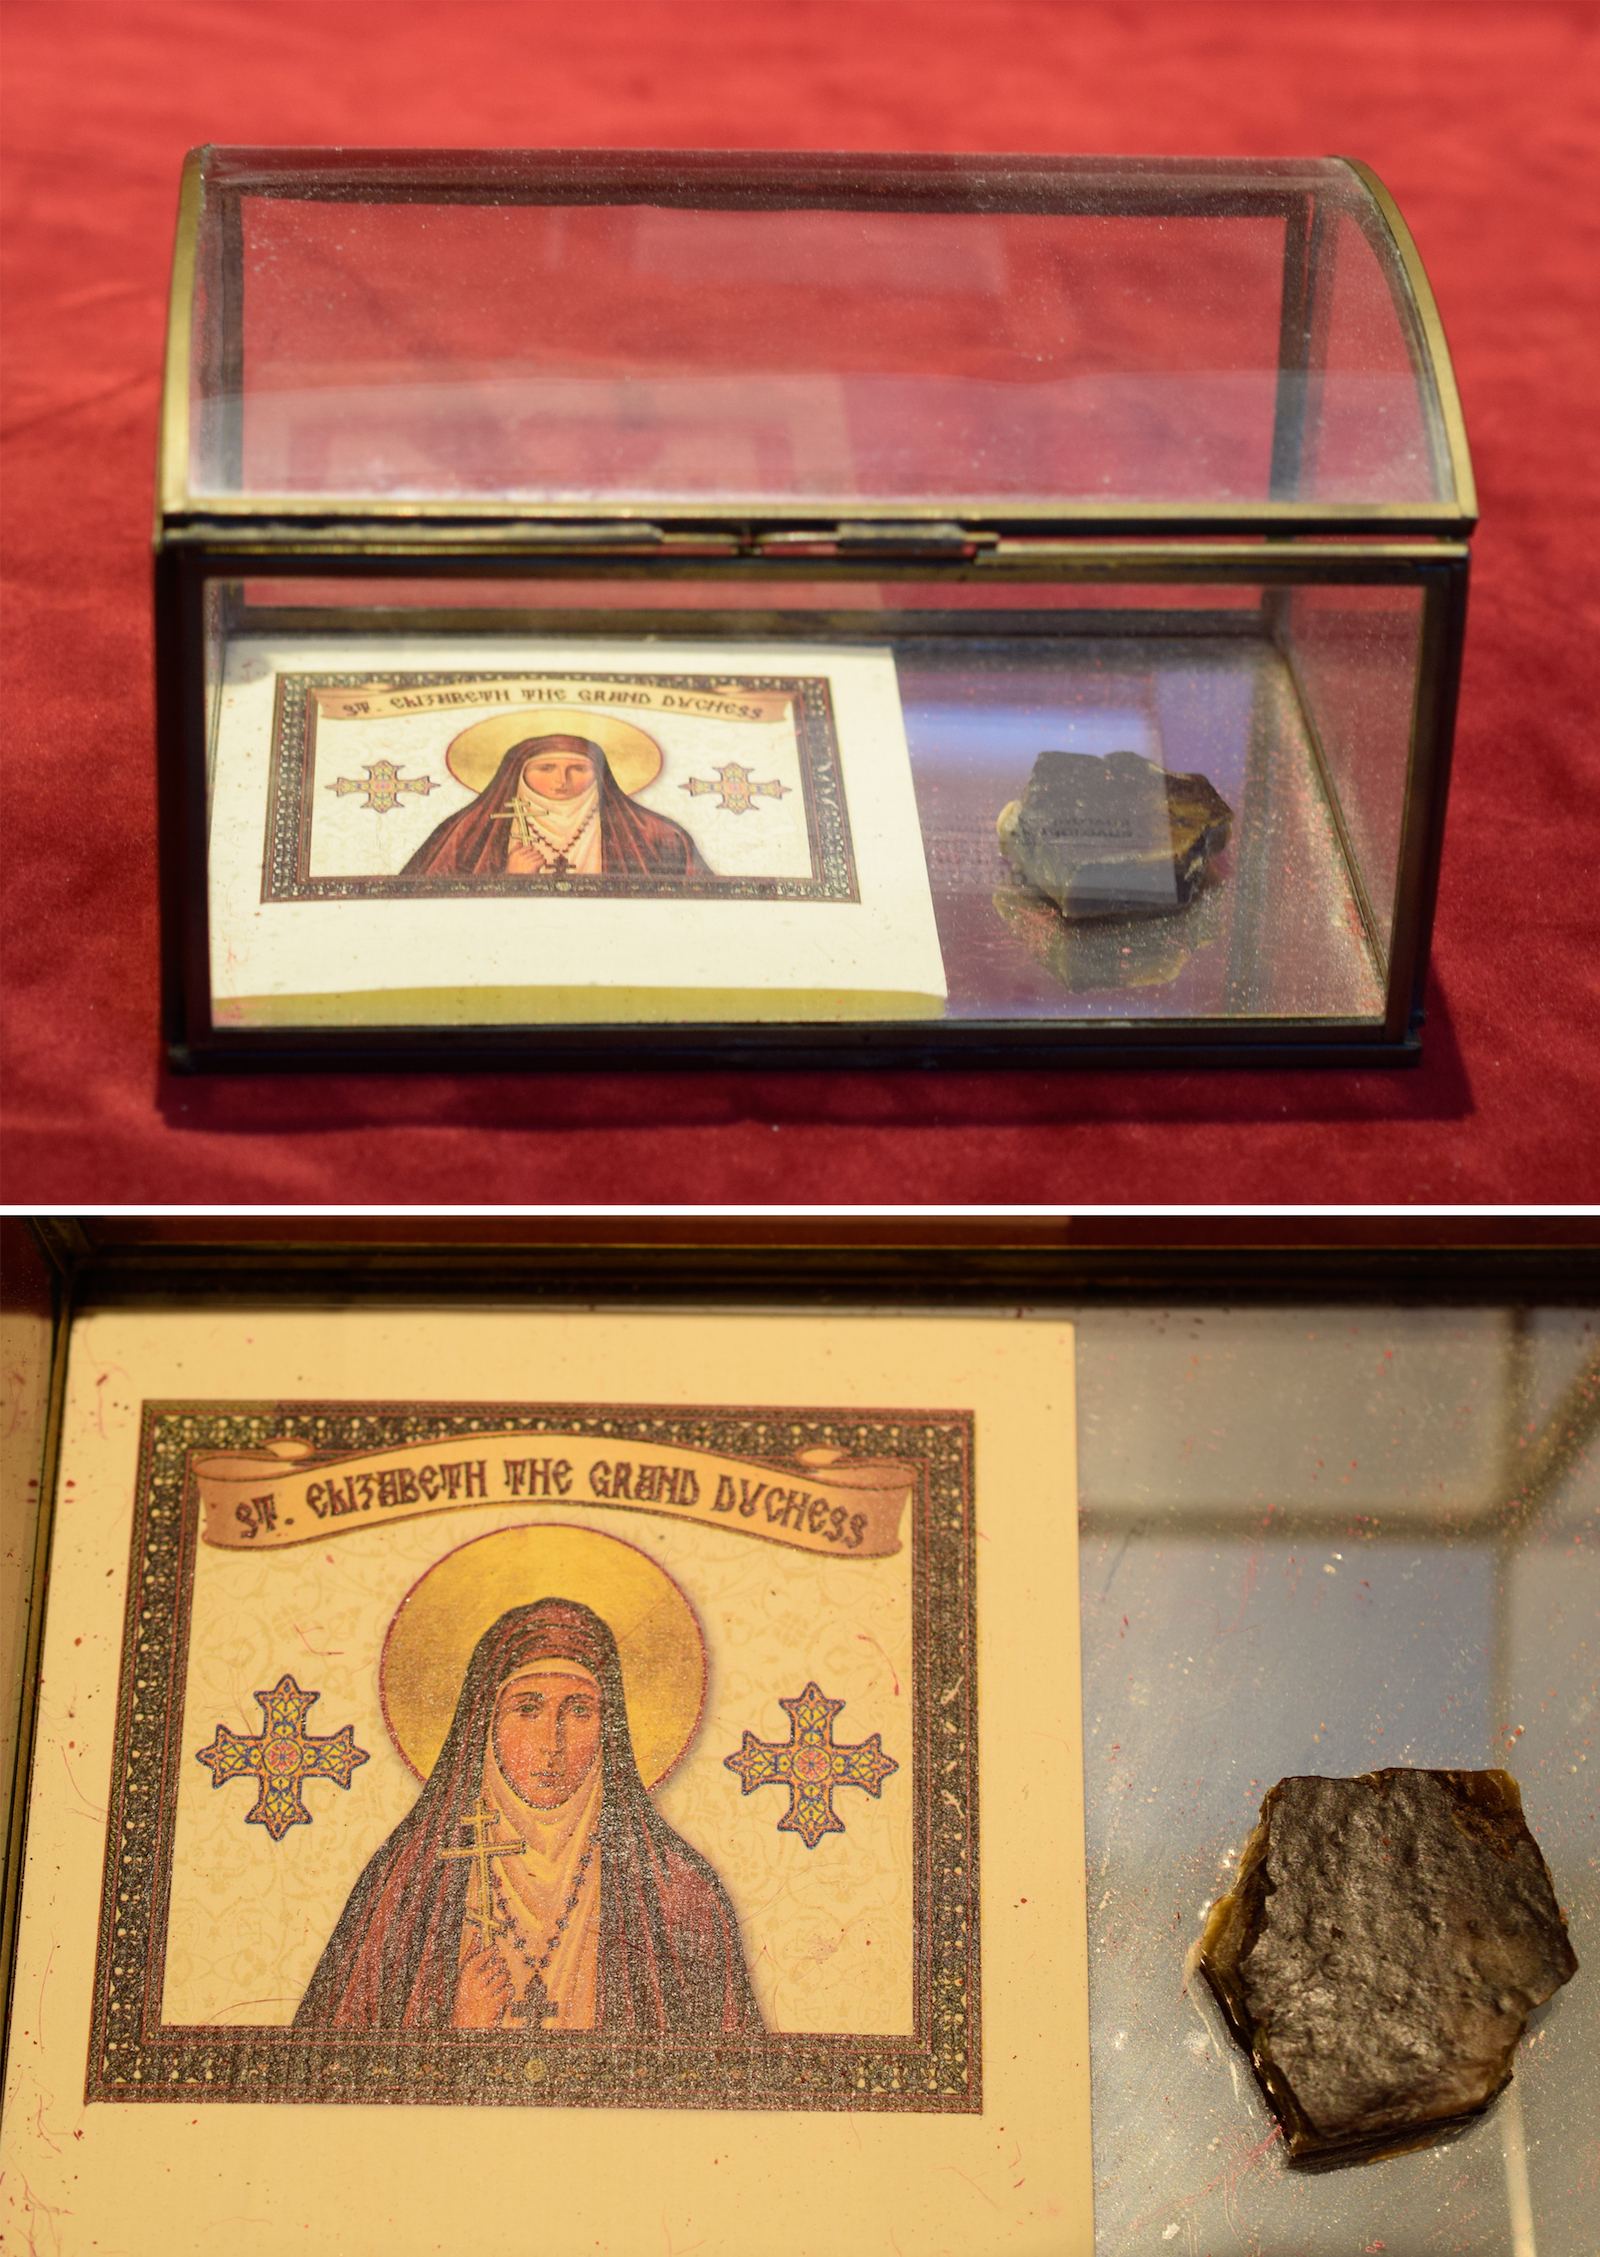 Relics of the Grand Duchess Elizabeth